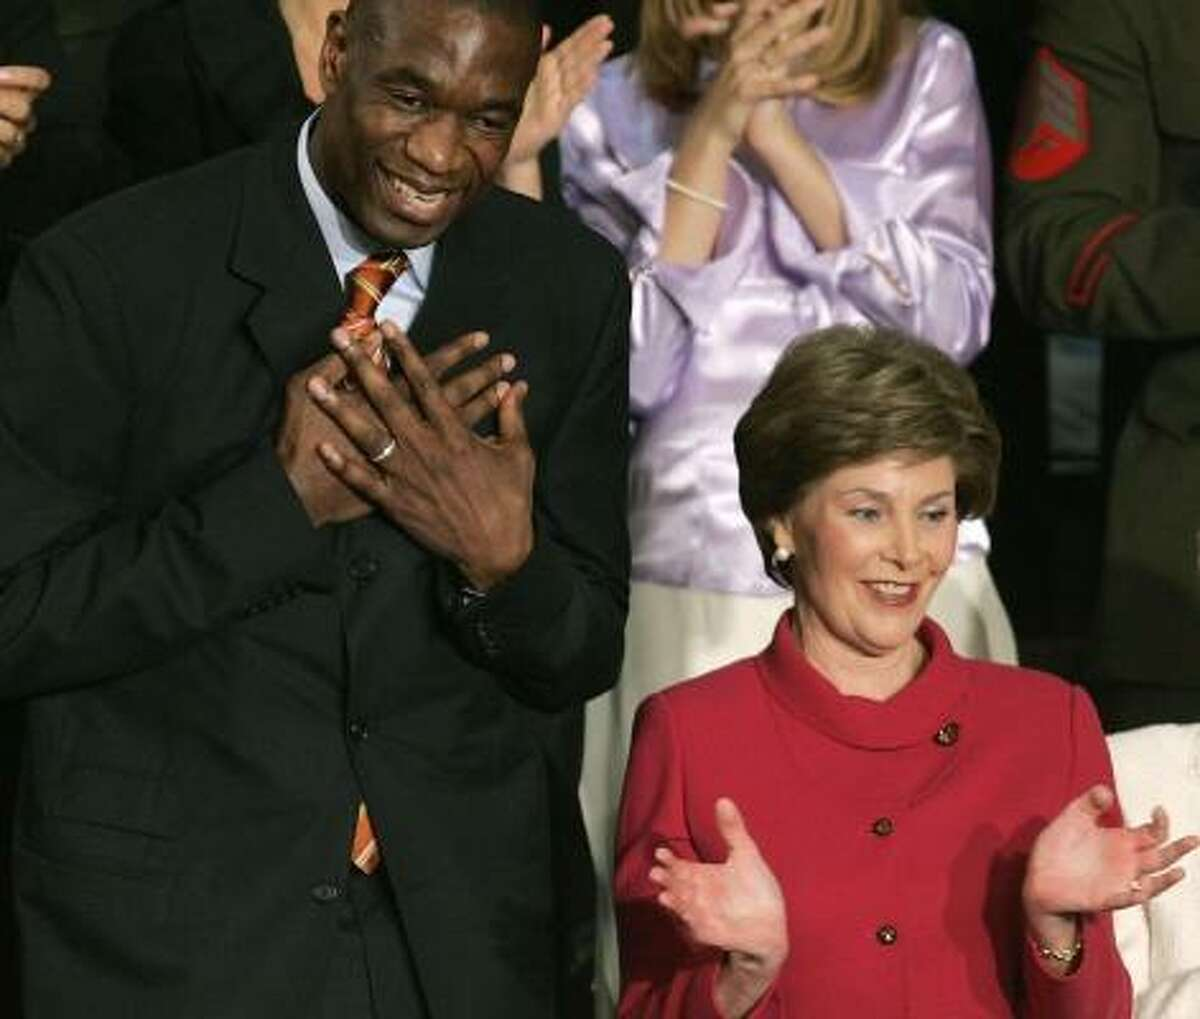 Dikembe Mutombo, left, acknowledges applause at the U.S. Capitol. Mutombo was honored during Bush's speech as an example of